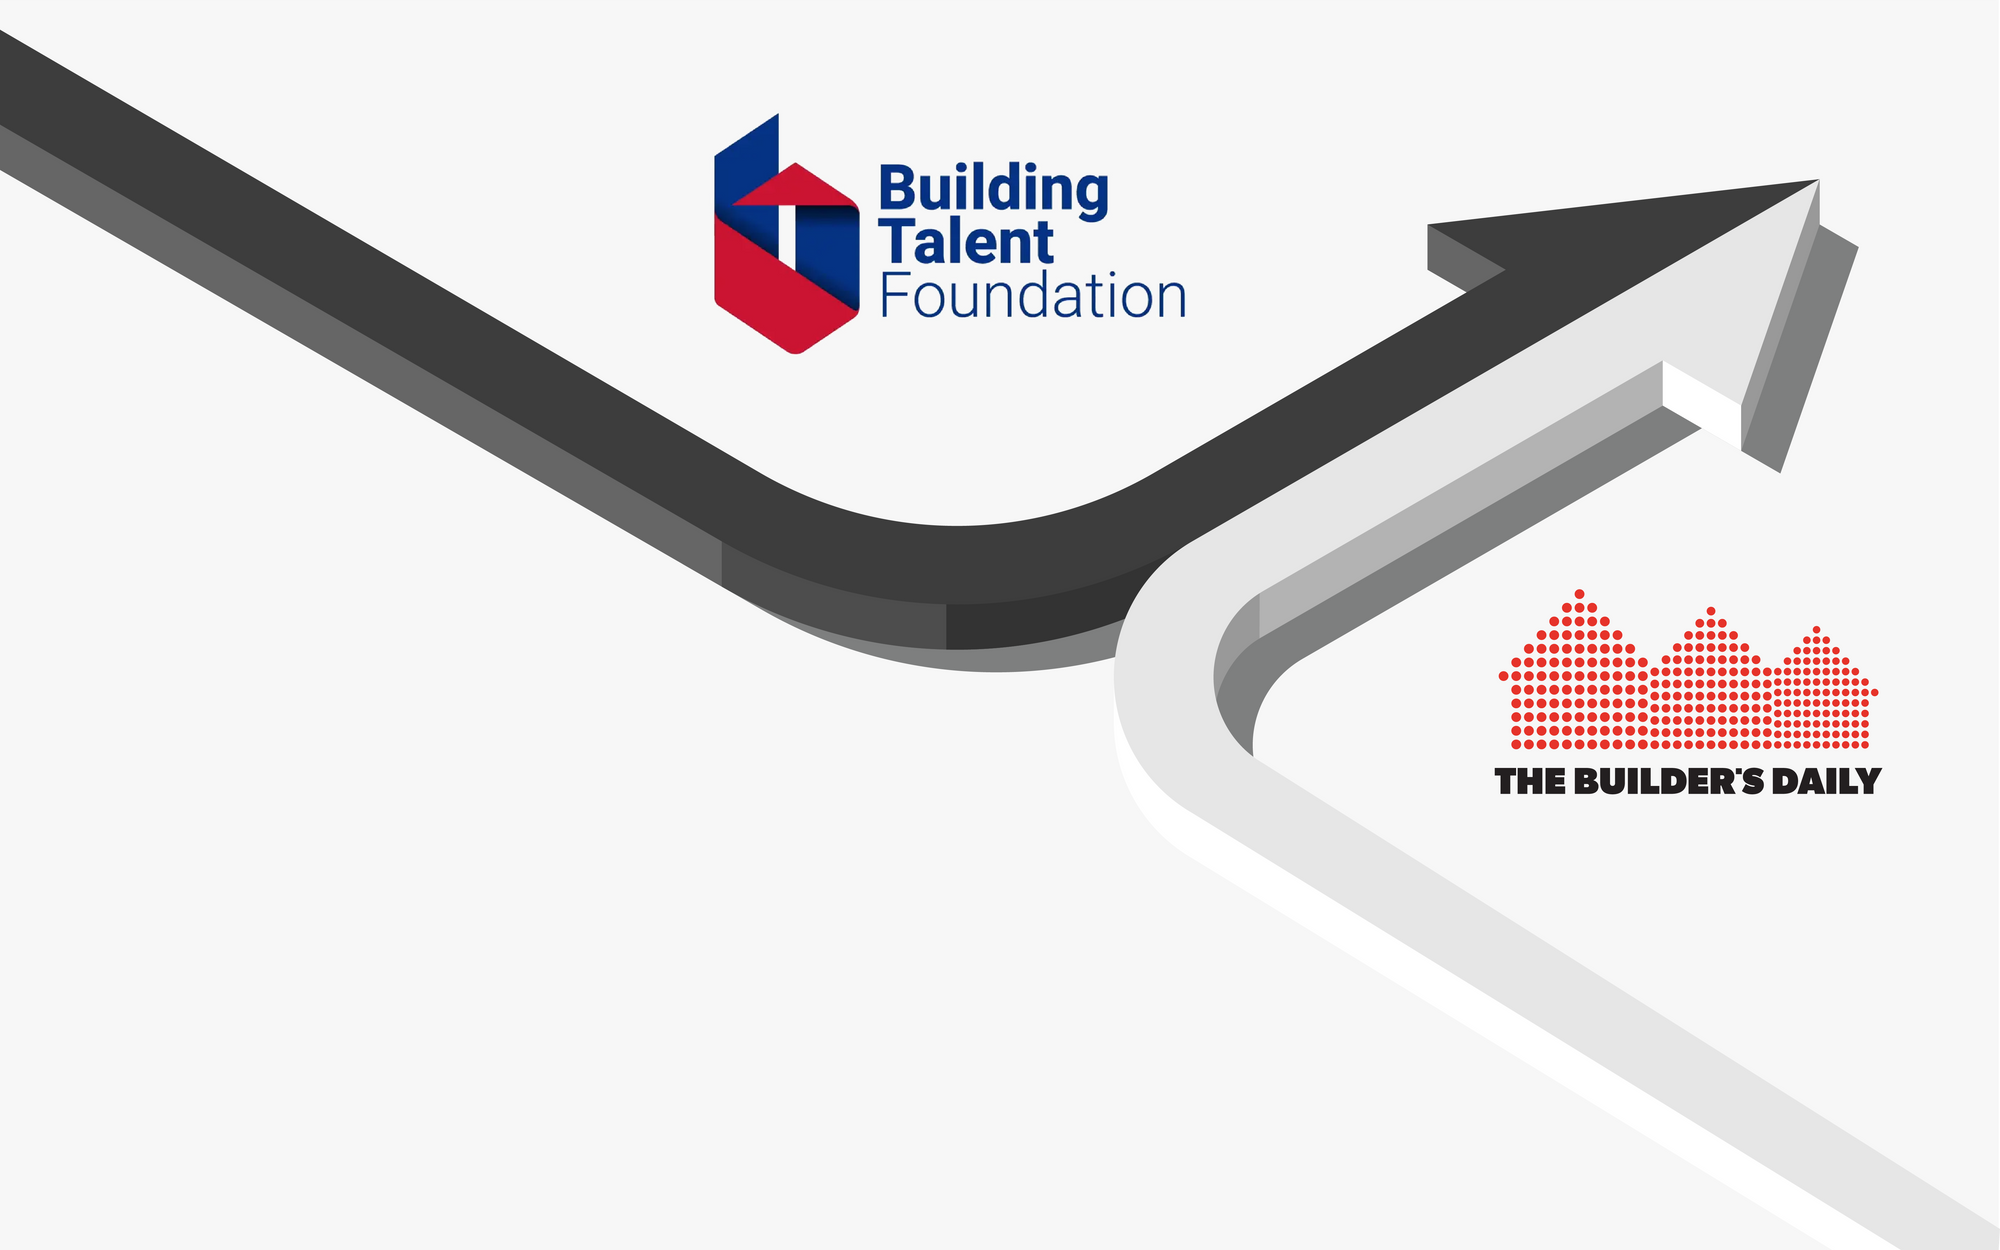 TBD Partners With The Building Talent Foundation On Capability And Action